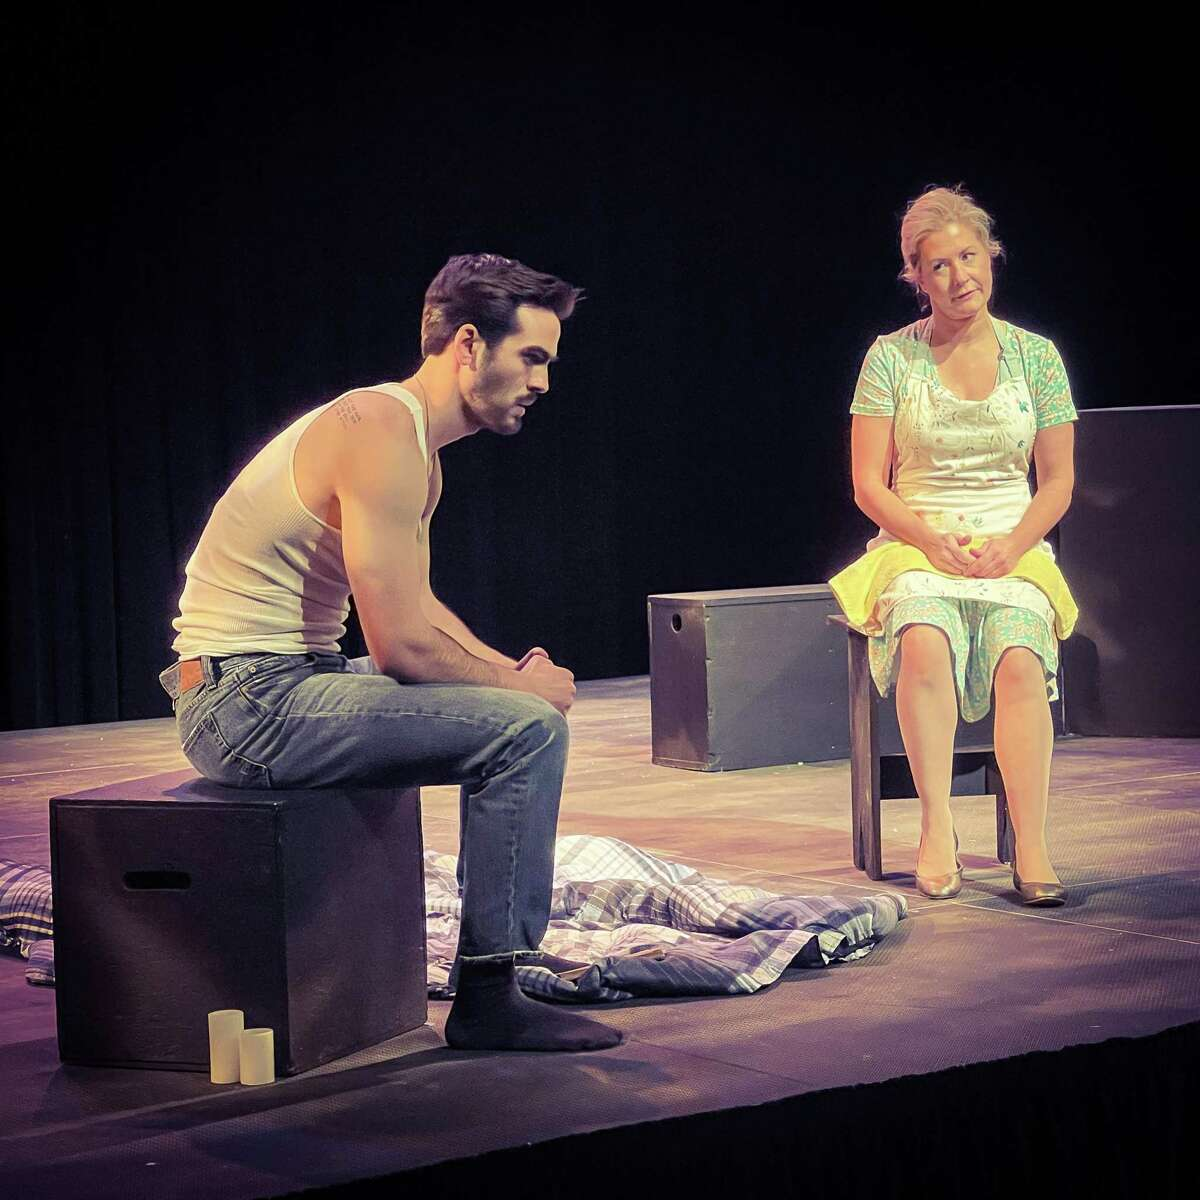 The next production of the Warner Theatre's 9th Annual International Playwrights Festival is